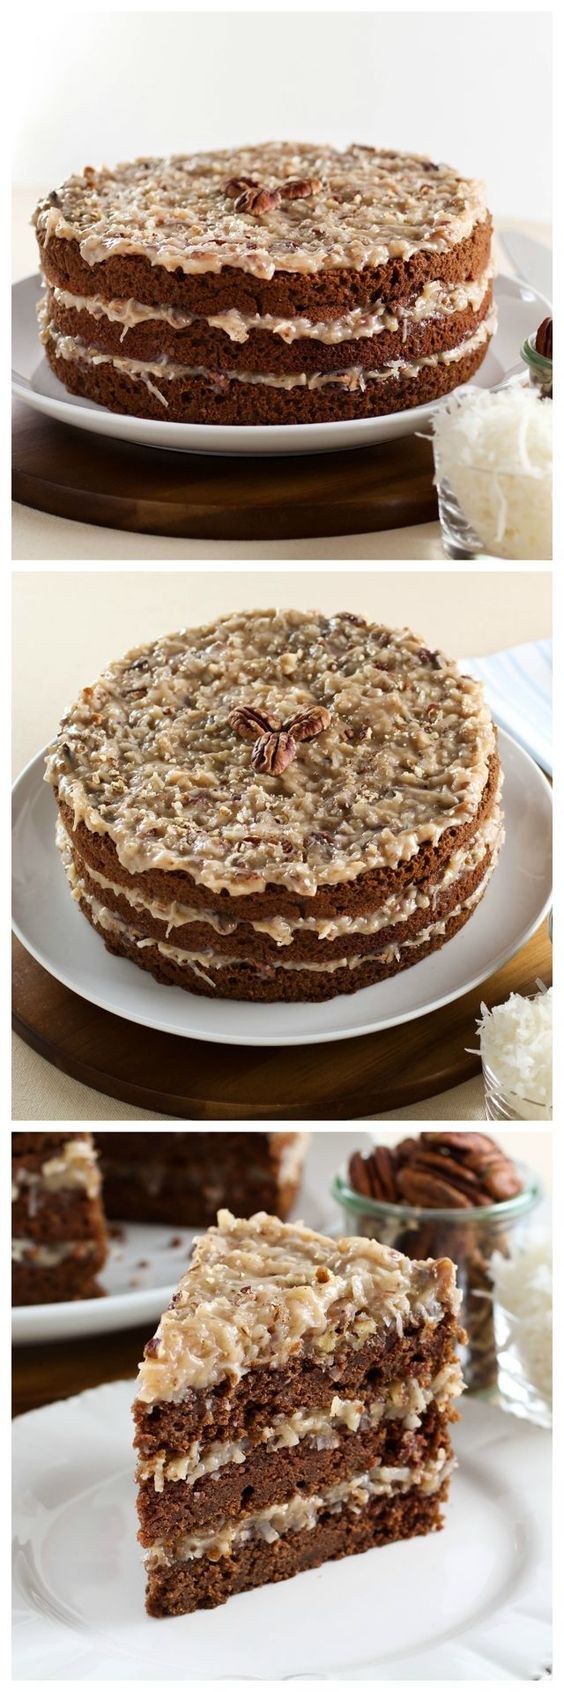 German Chocolate Cake | Recipe | Chocolate cakes, Wanderlust and Cakes